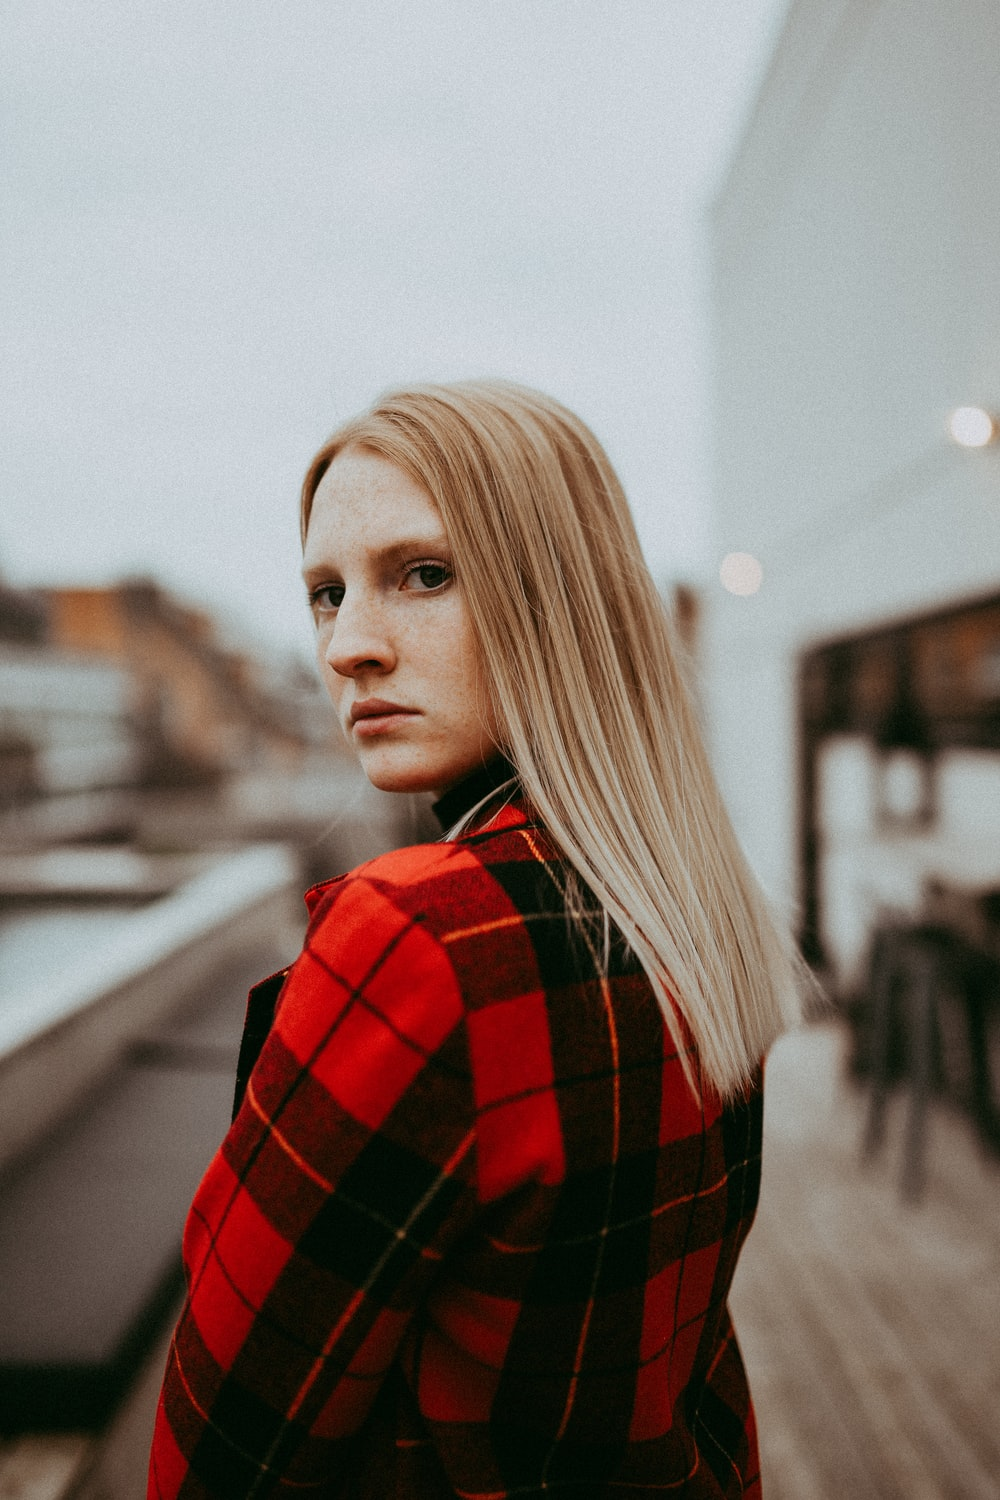 woman wearing black and red plaid jacket